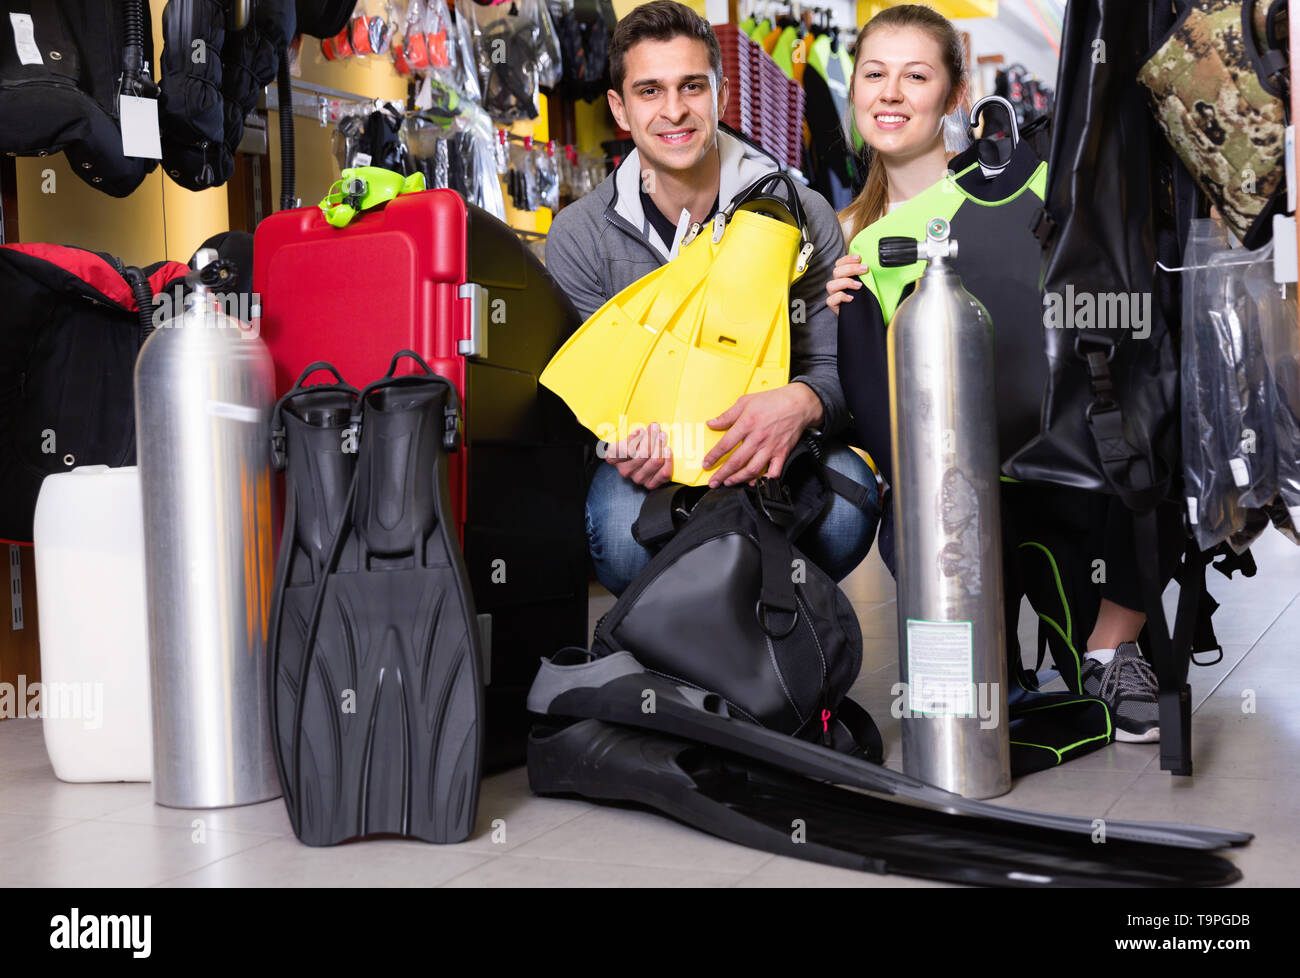 Glad  positive smiling man and woman are standing with modern diving equipment in the store. - Stock Image